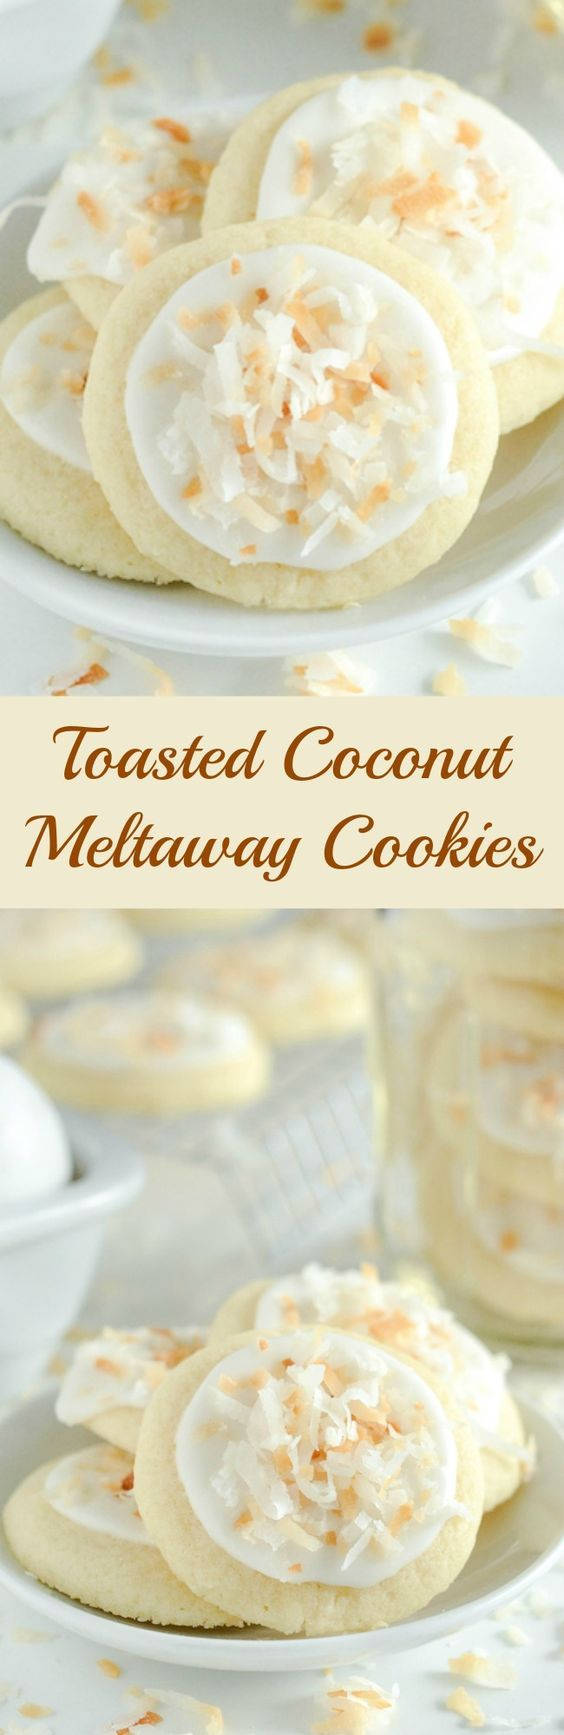 Coconut Meltaway Cookies – a soft coconut shortbread cookie topped with royal icing and toasted coconu